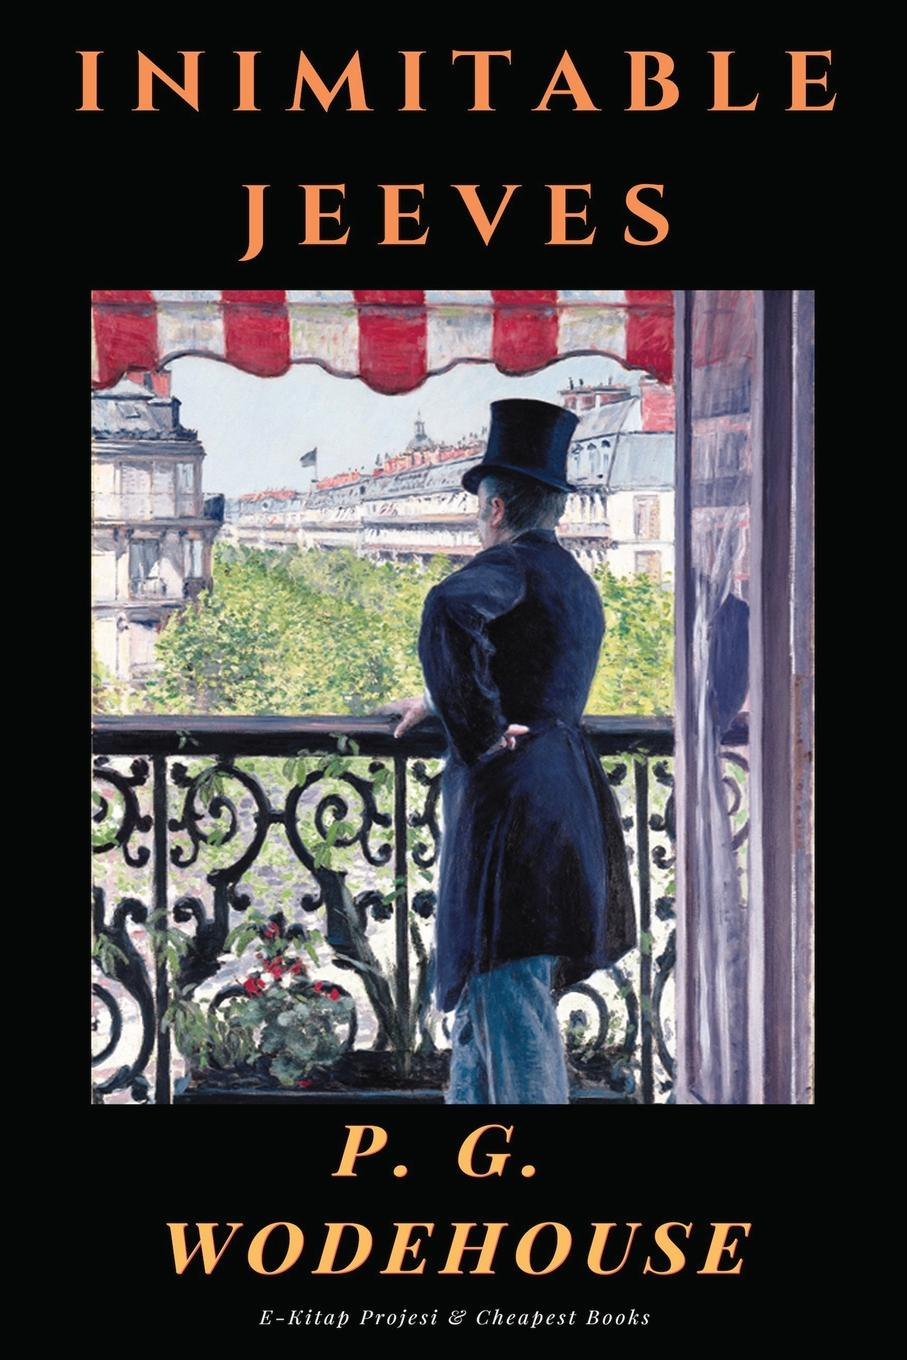 P. G. Wodehouse Inimitable Jeeves